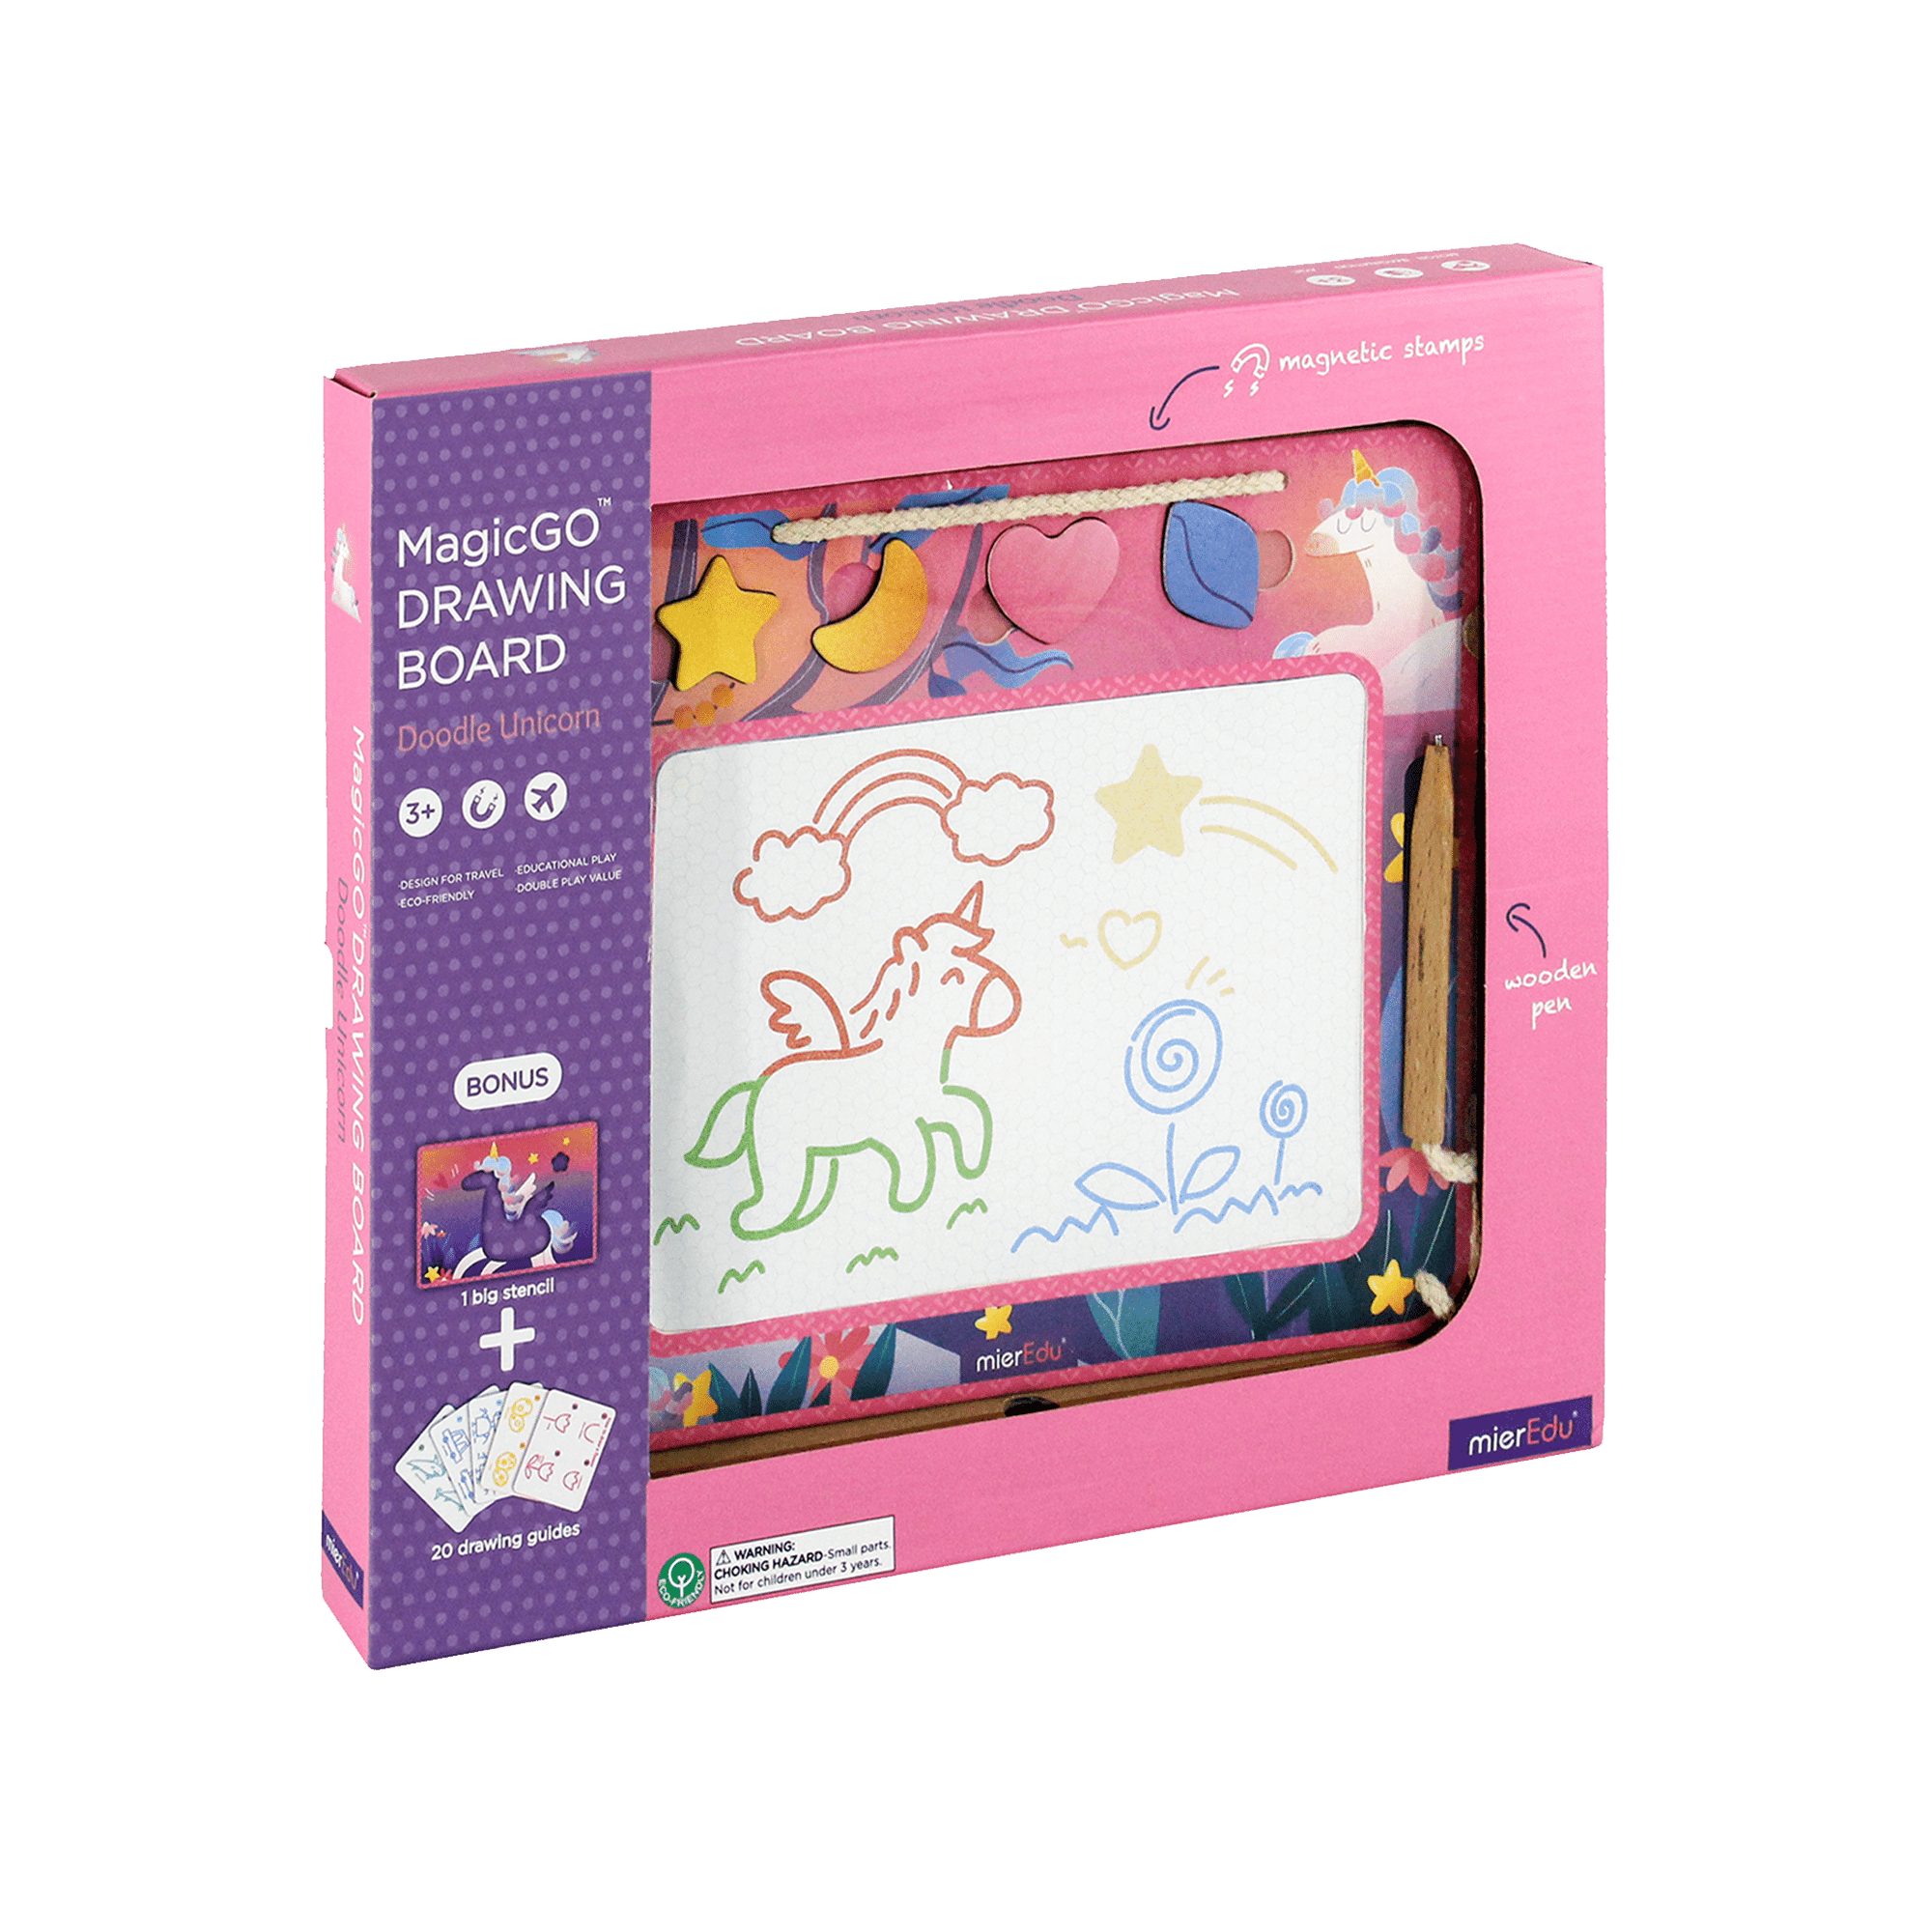 MierEdu MagicGo Drawing Board Unicorn box and toy